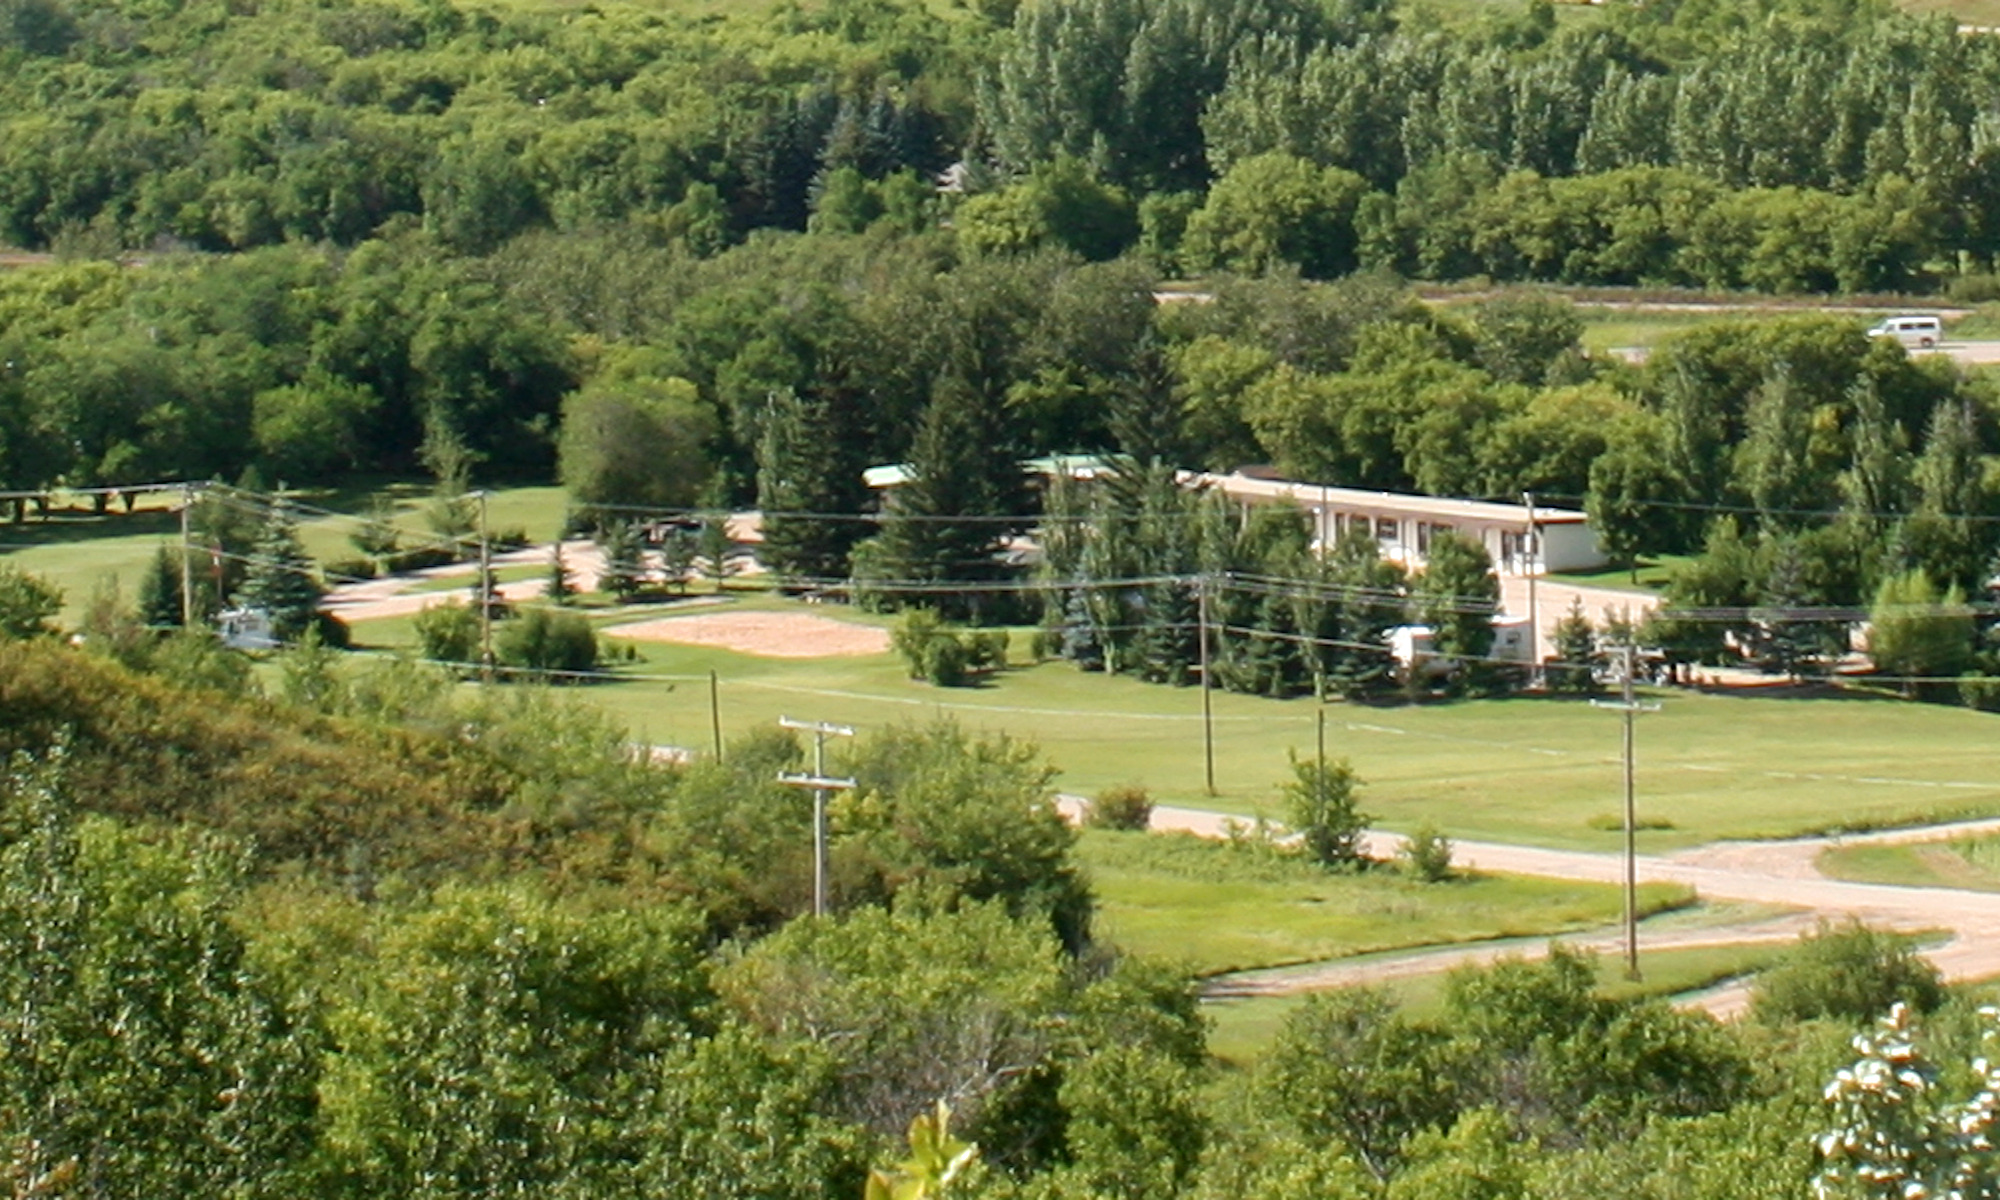 BraeBurn Inn from a nearby hill